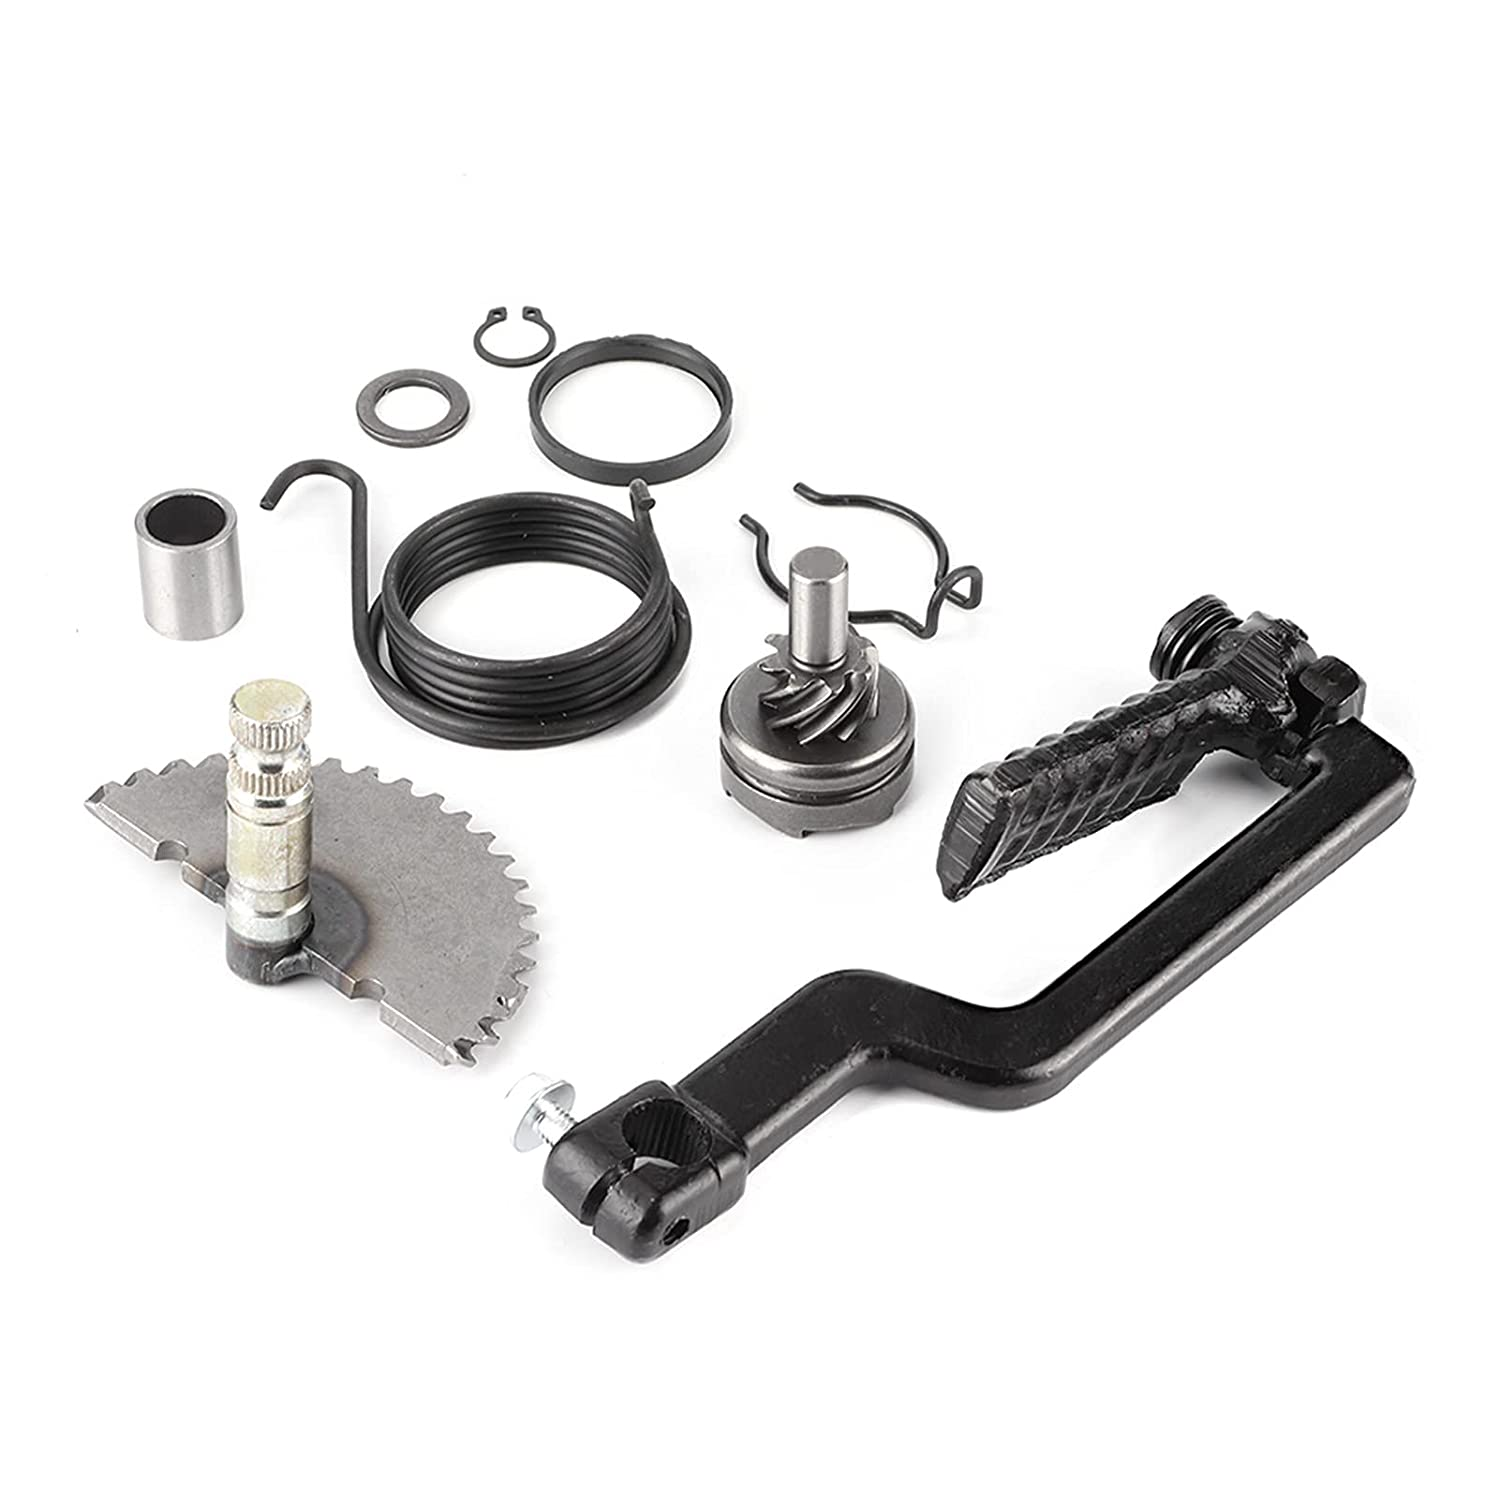 Wear-Resistant Motorcycle Starter Lever SEAL limited product K Kit Shaft Now on sale